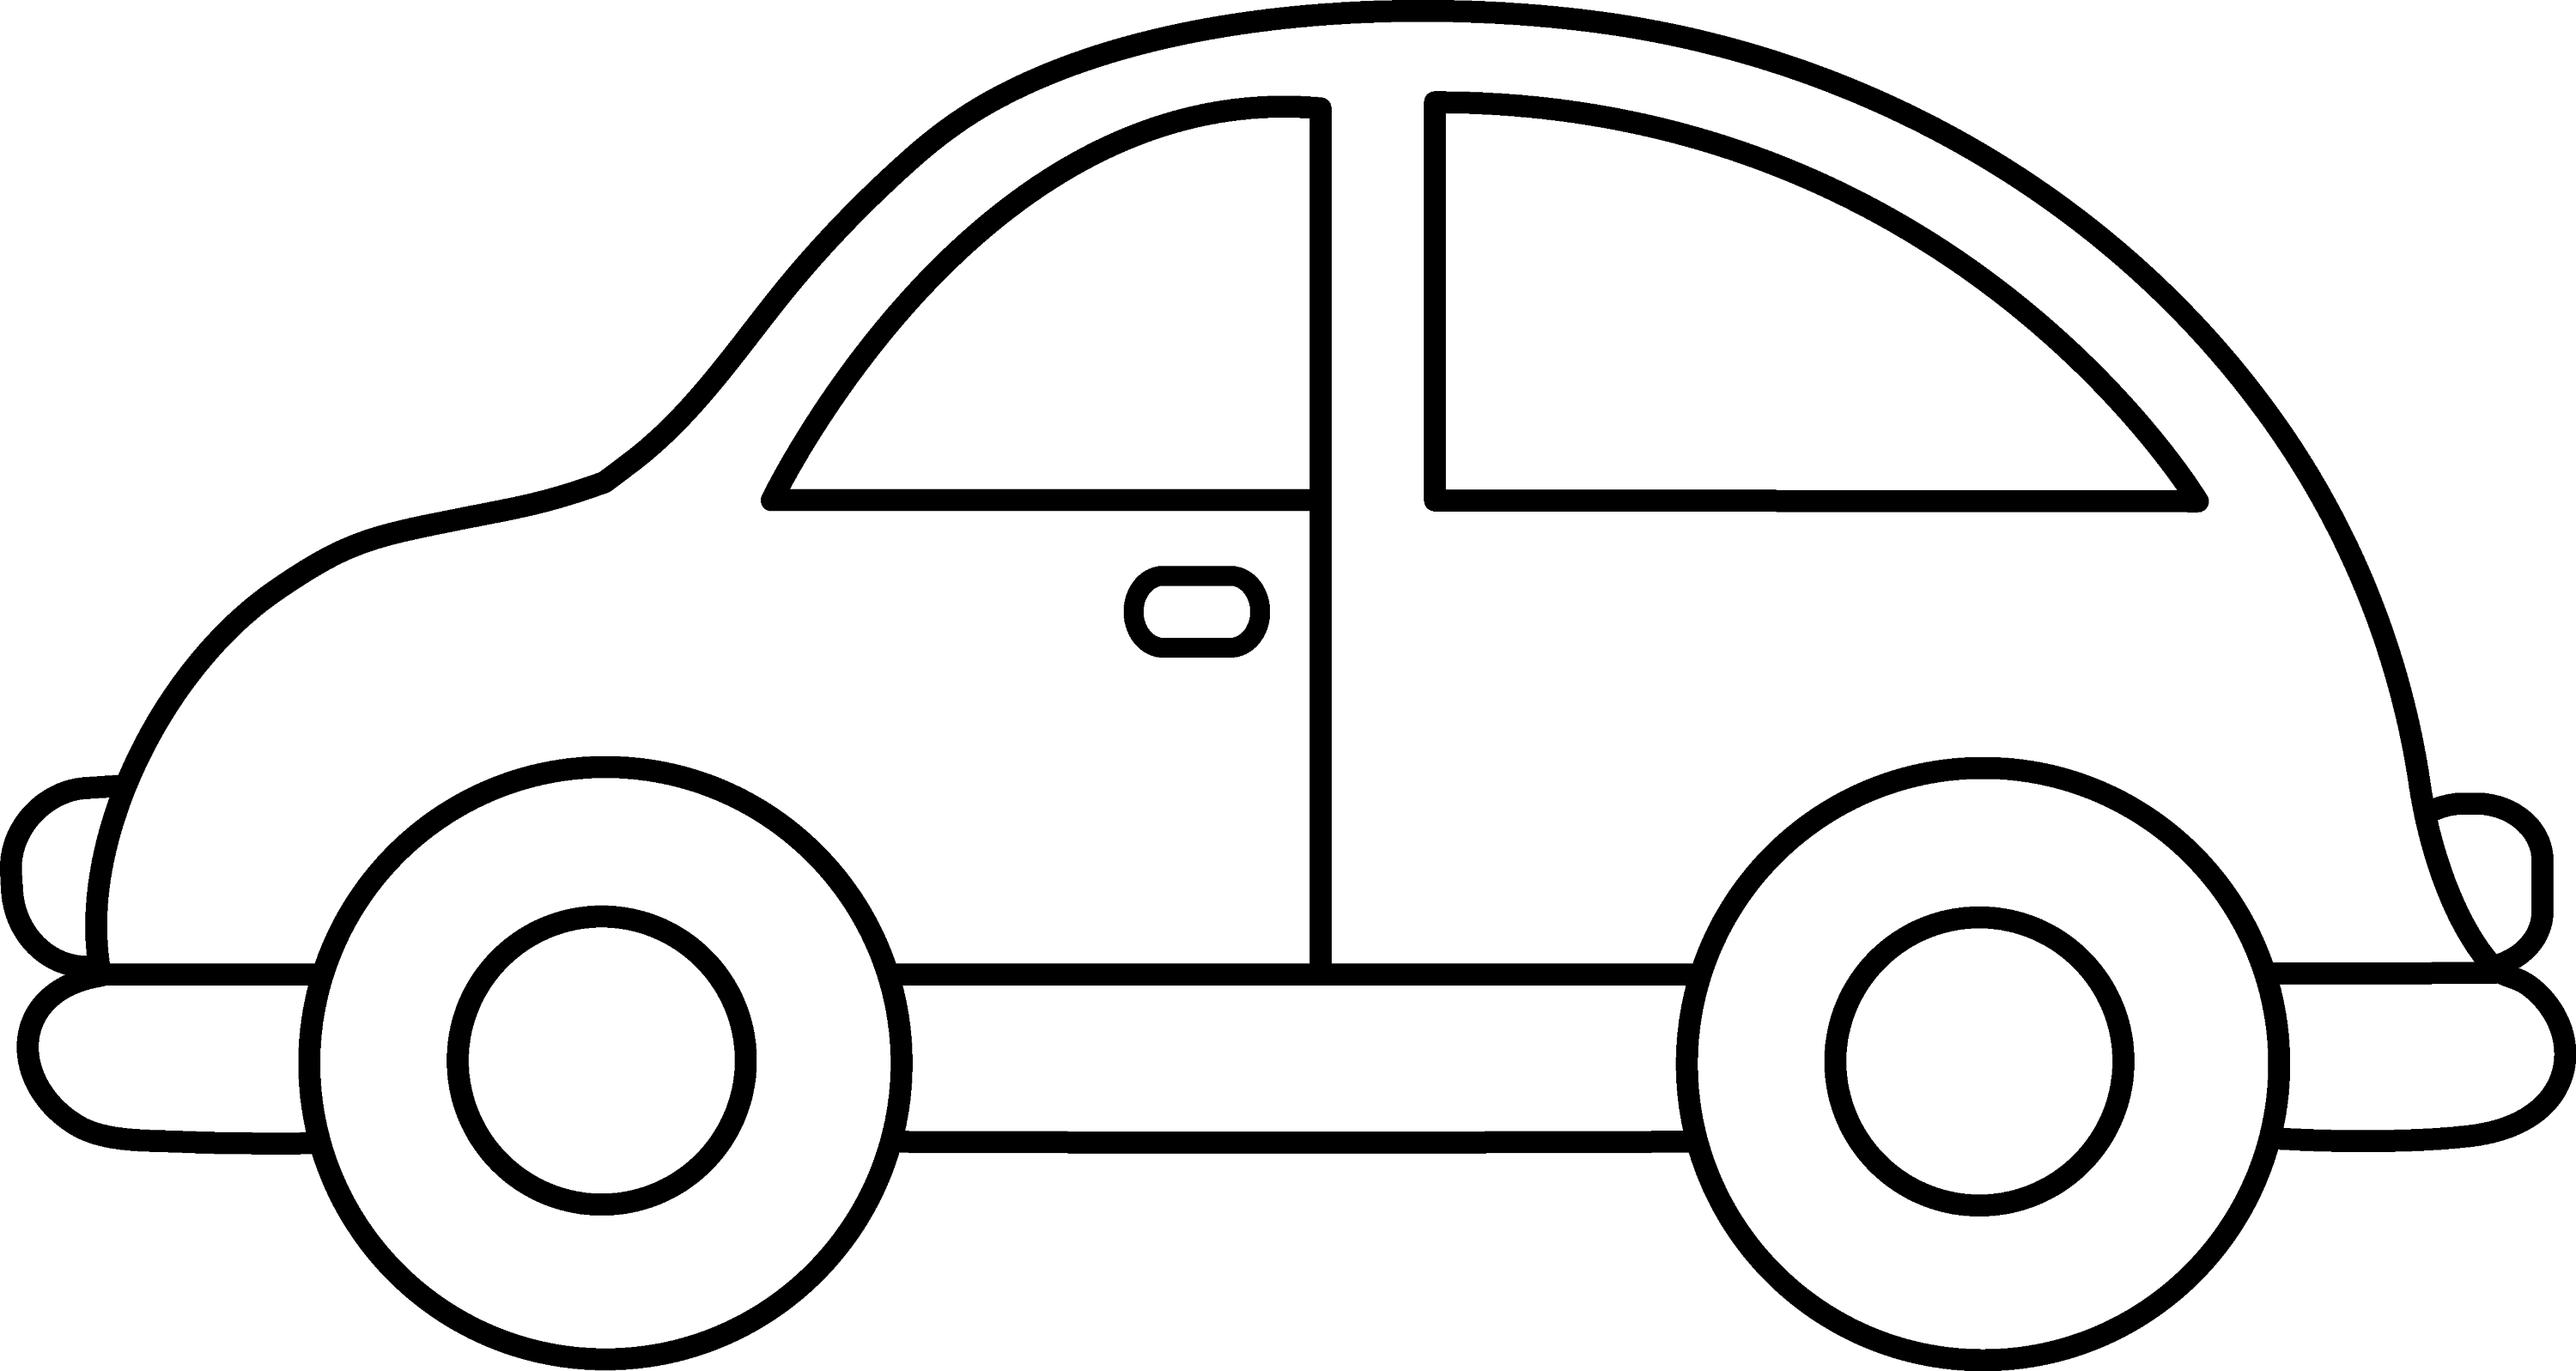 coloring toy car car perspective drawing free download on clipartmag toy car coloring